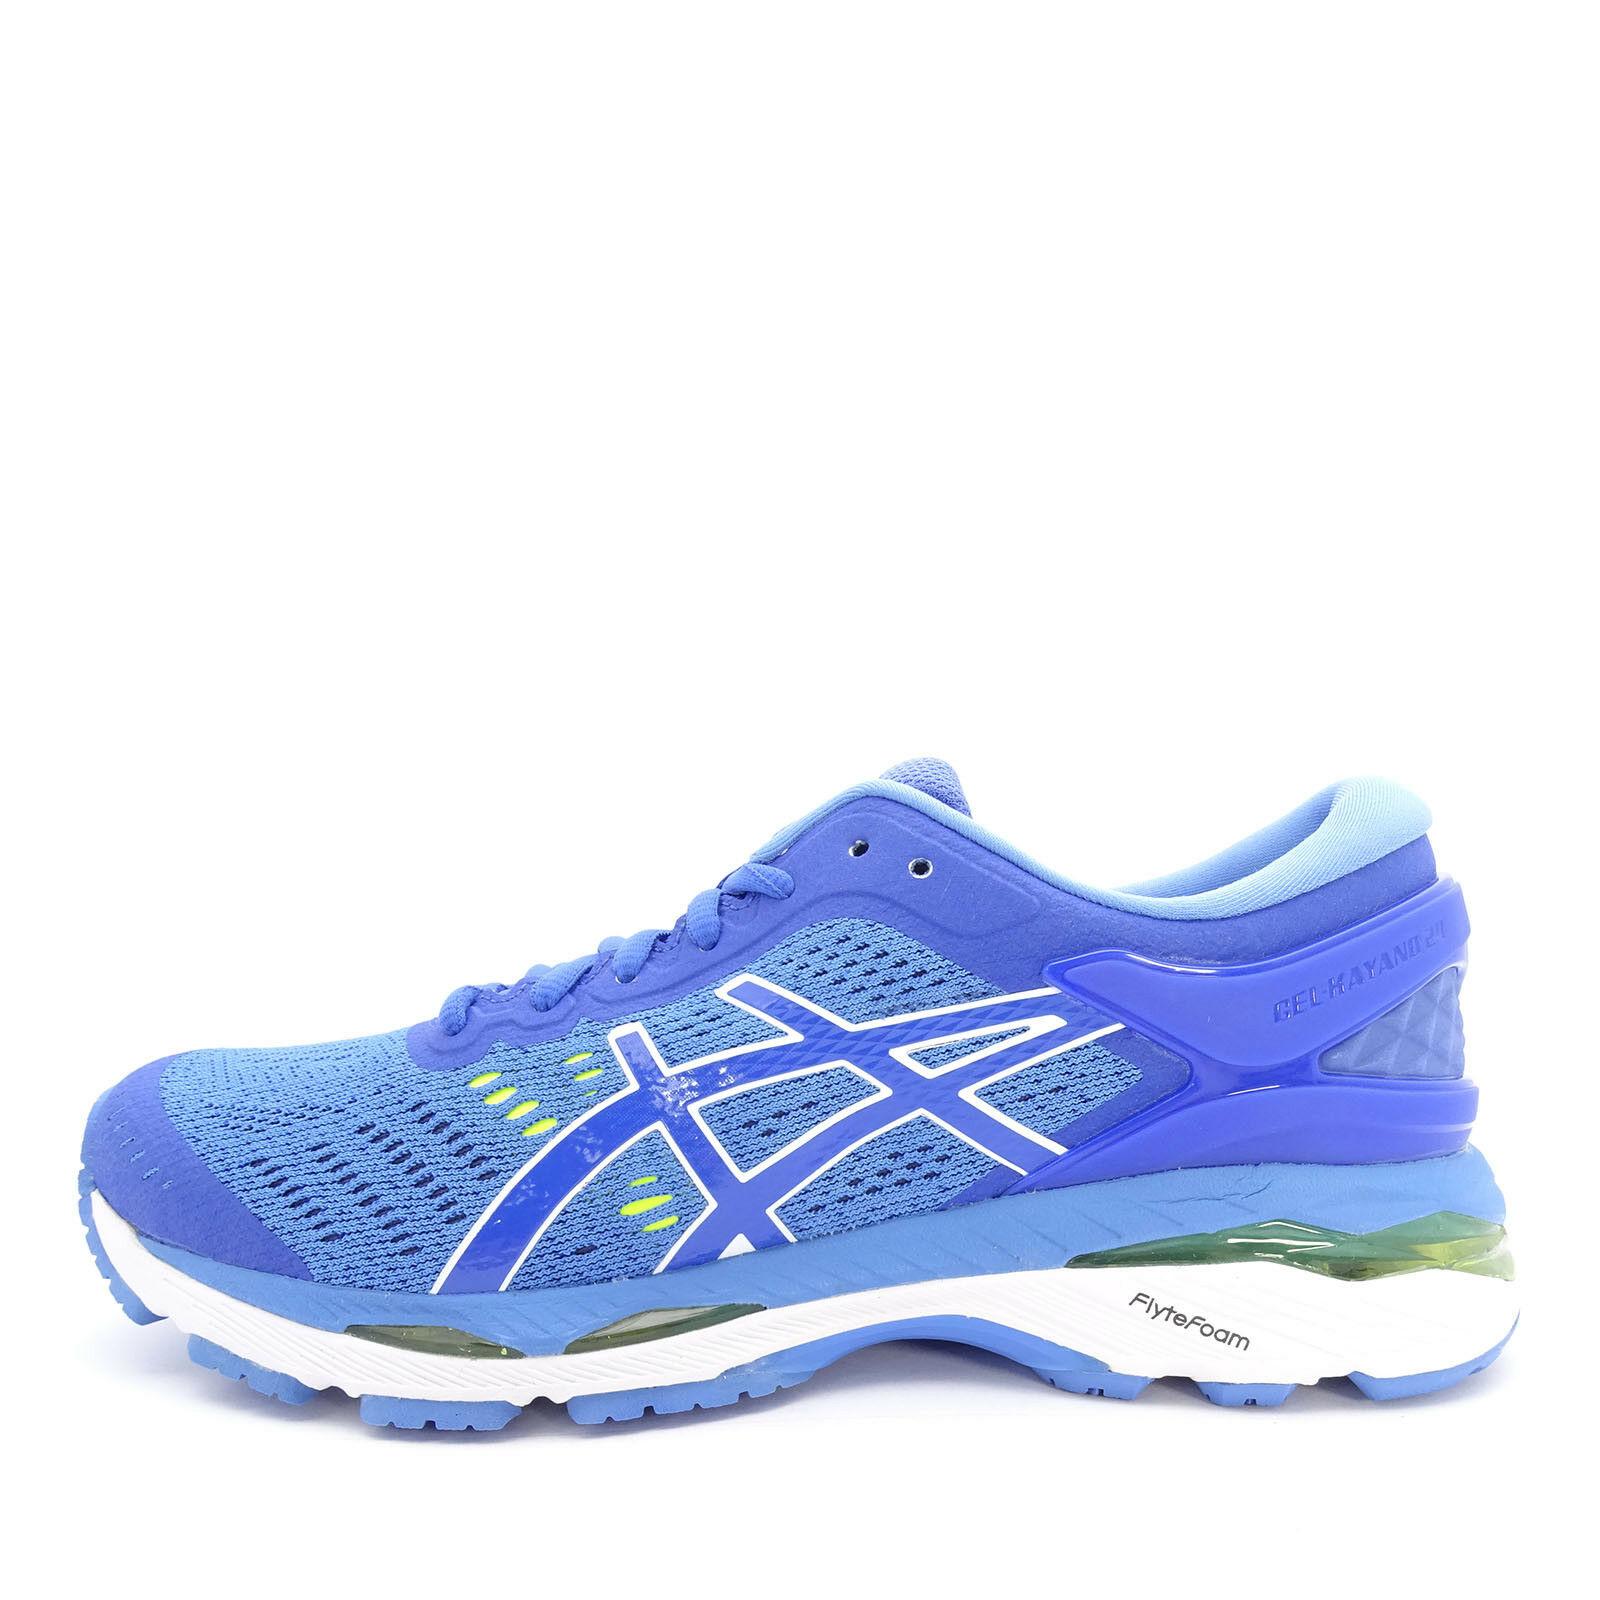 Asics GEL-Kayano 24 [T799N-4840] Women Running Shoes Blue Purple/White